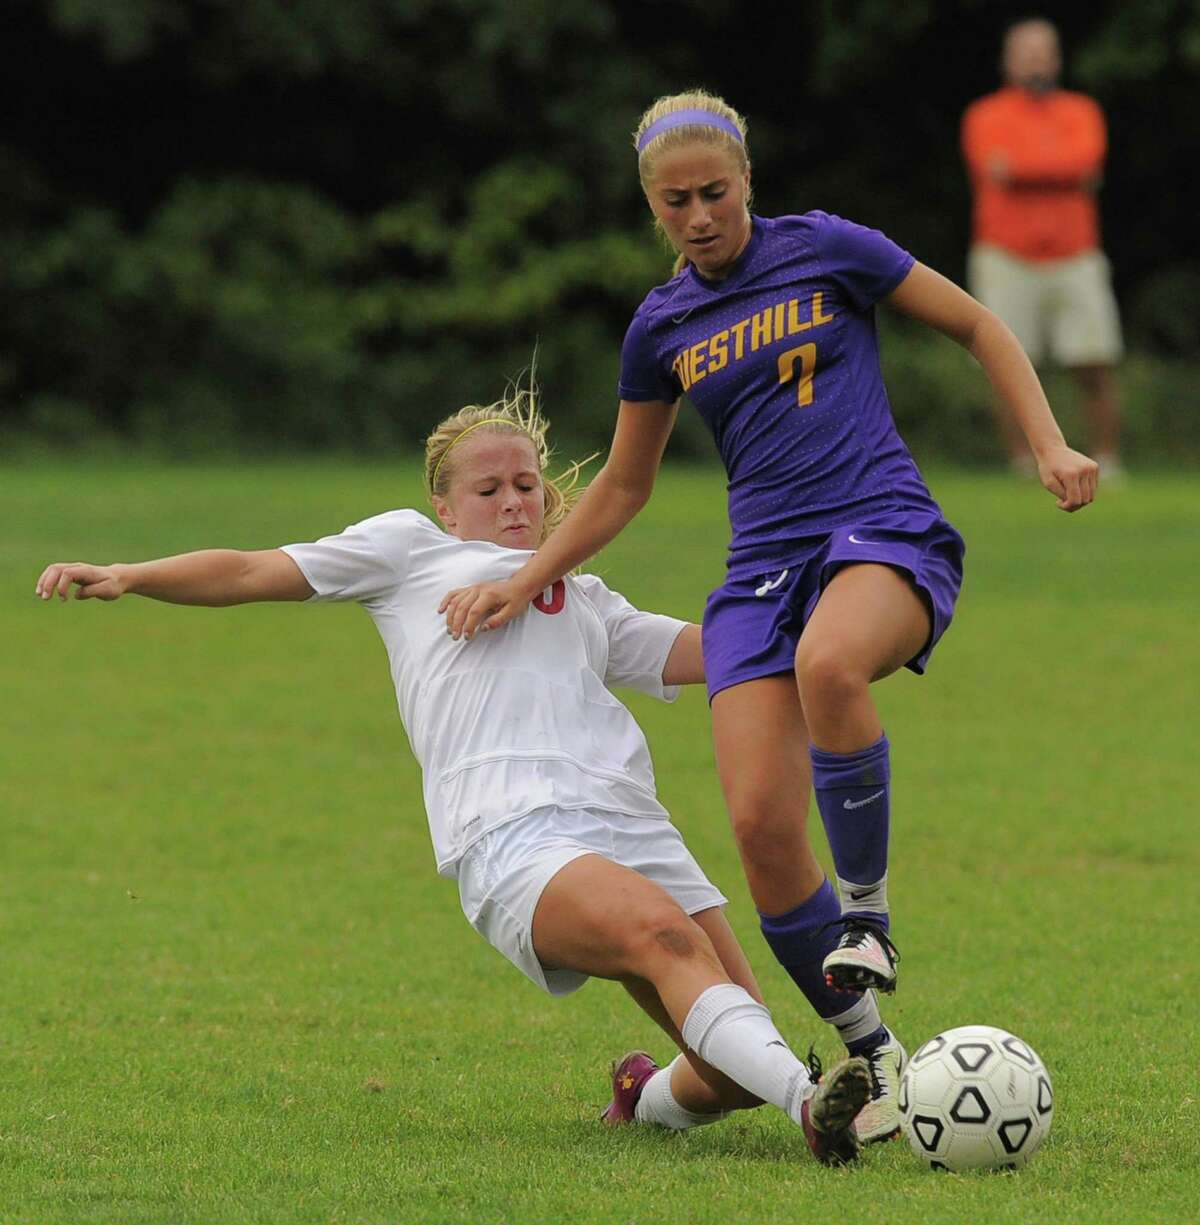 Westhill's Natalie Druehl, right, has formed an unbreakable bond with forward Chelsea Domond. The two teammates have been playing together since they were on an under-8 team.